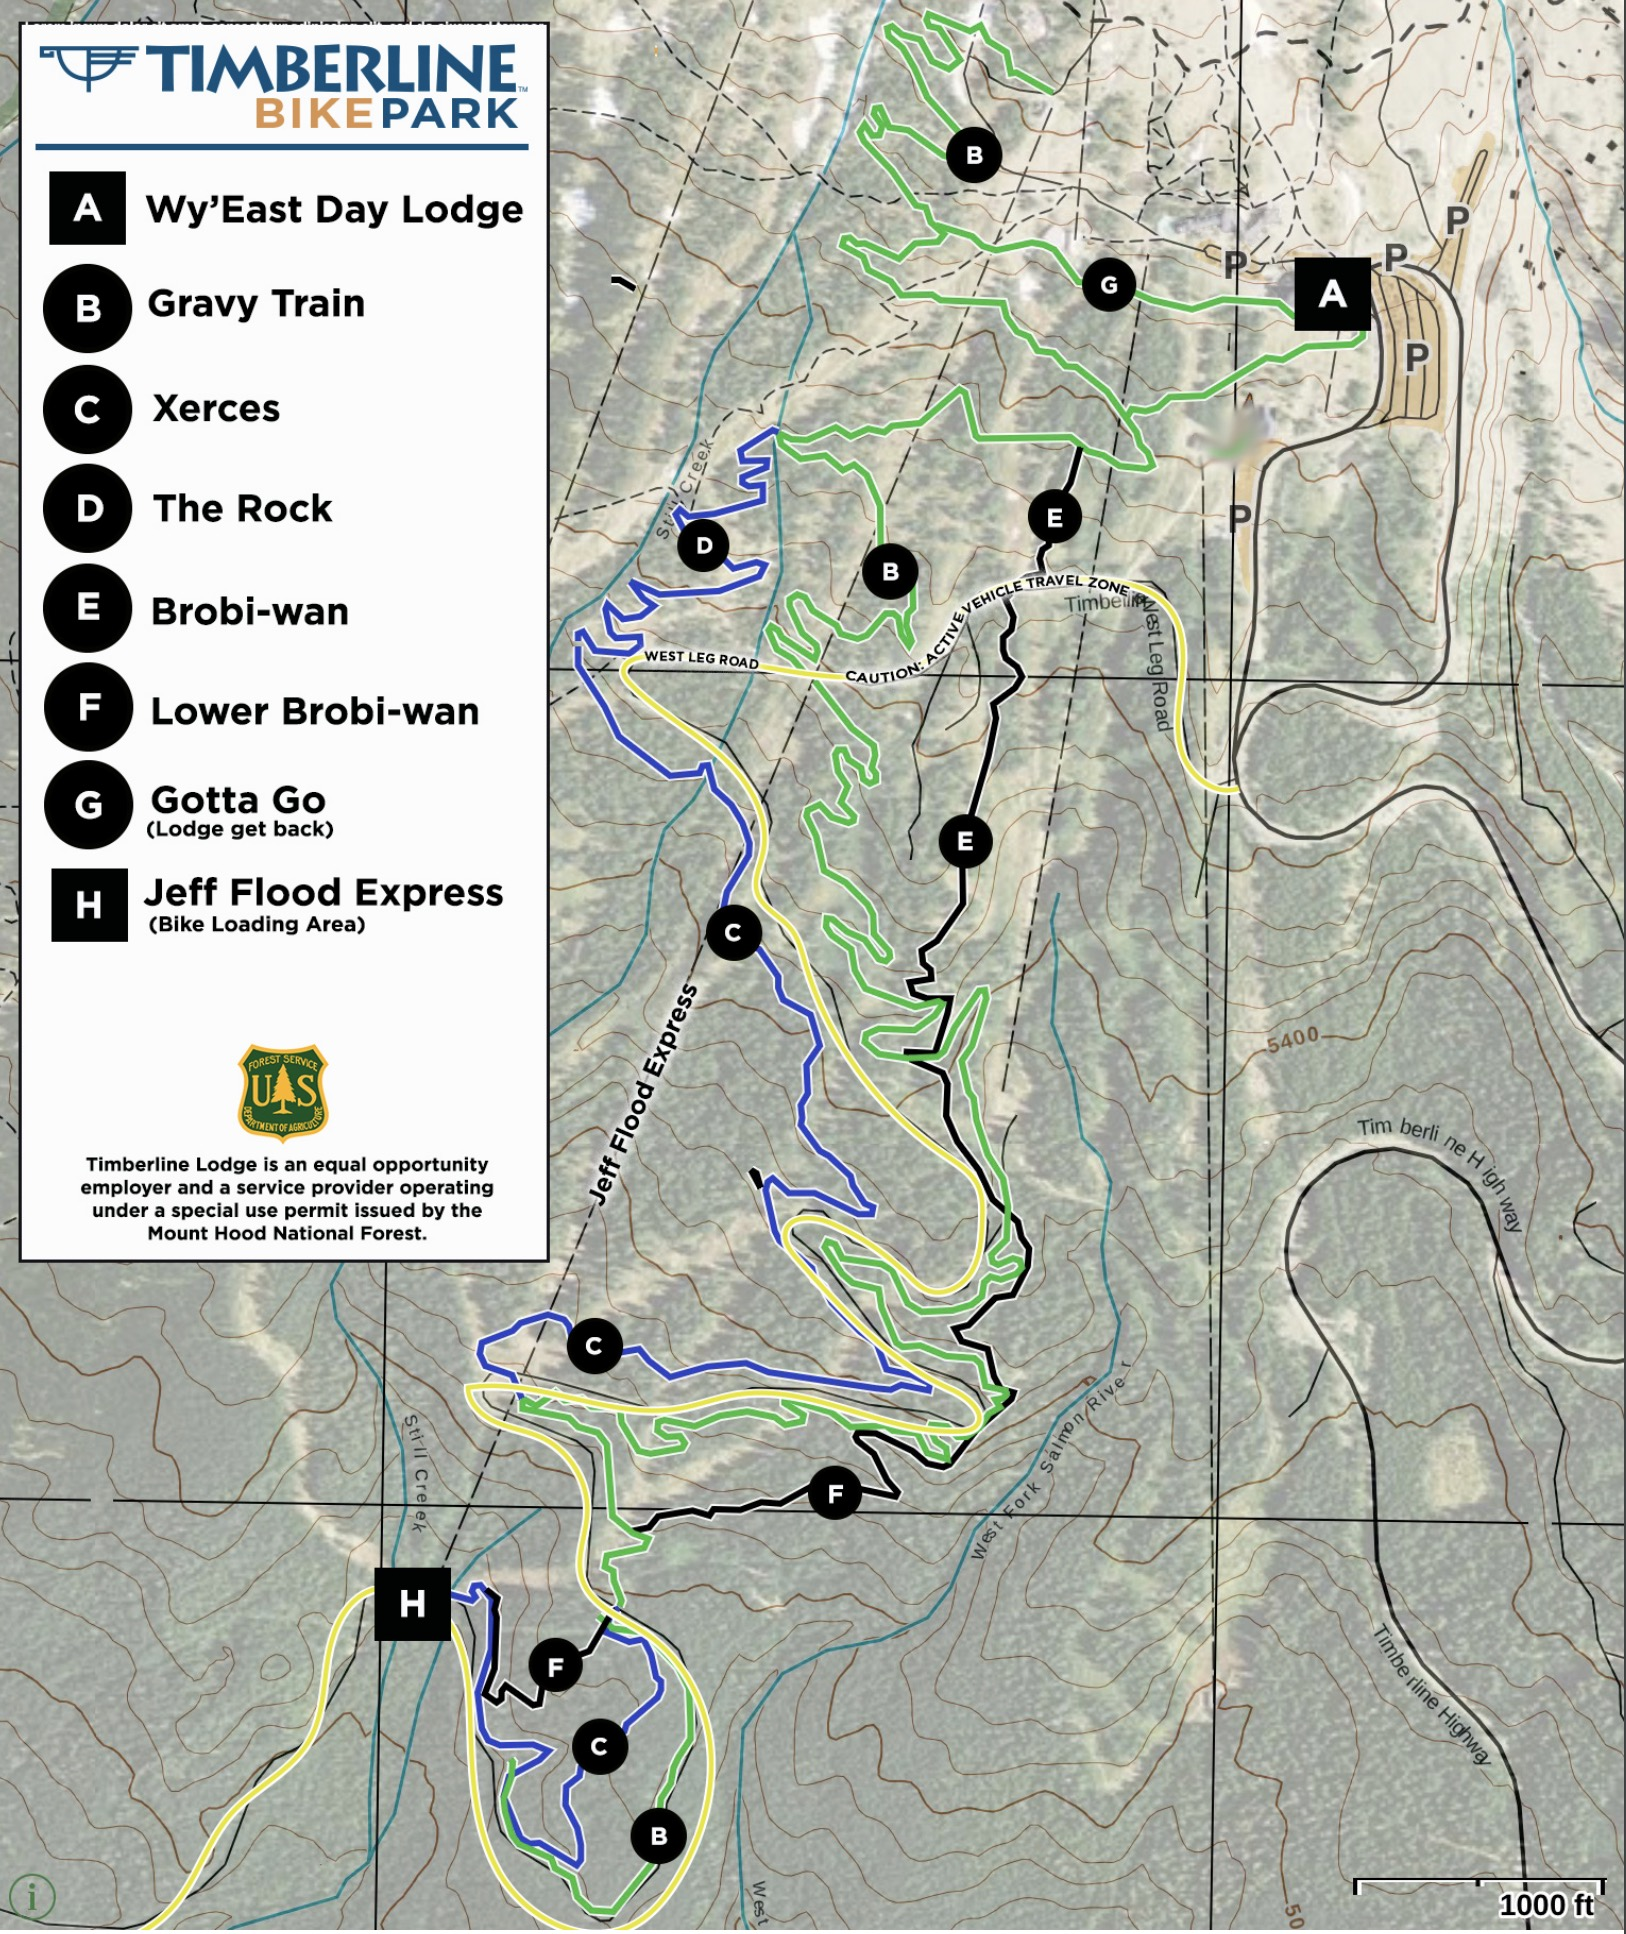 Timberline Bike Park on Mt. Hood set to open any day now - UPDATED on map of damascus, map of columbia river, map of lakeview, map of columbia gorge, map of crater lake, map of gleneden beach, map of hillsboro, map of oregon, map of rogue river, map of milton freewater, map of cave junction, map of rainier, map of ontario, map of junction city, map of grants pass, map of cottage grove, map of mount hood area, map of hood river, map of john day, map of lebanon,